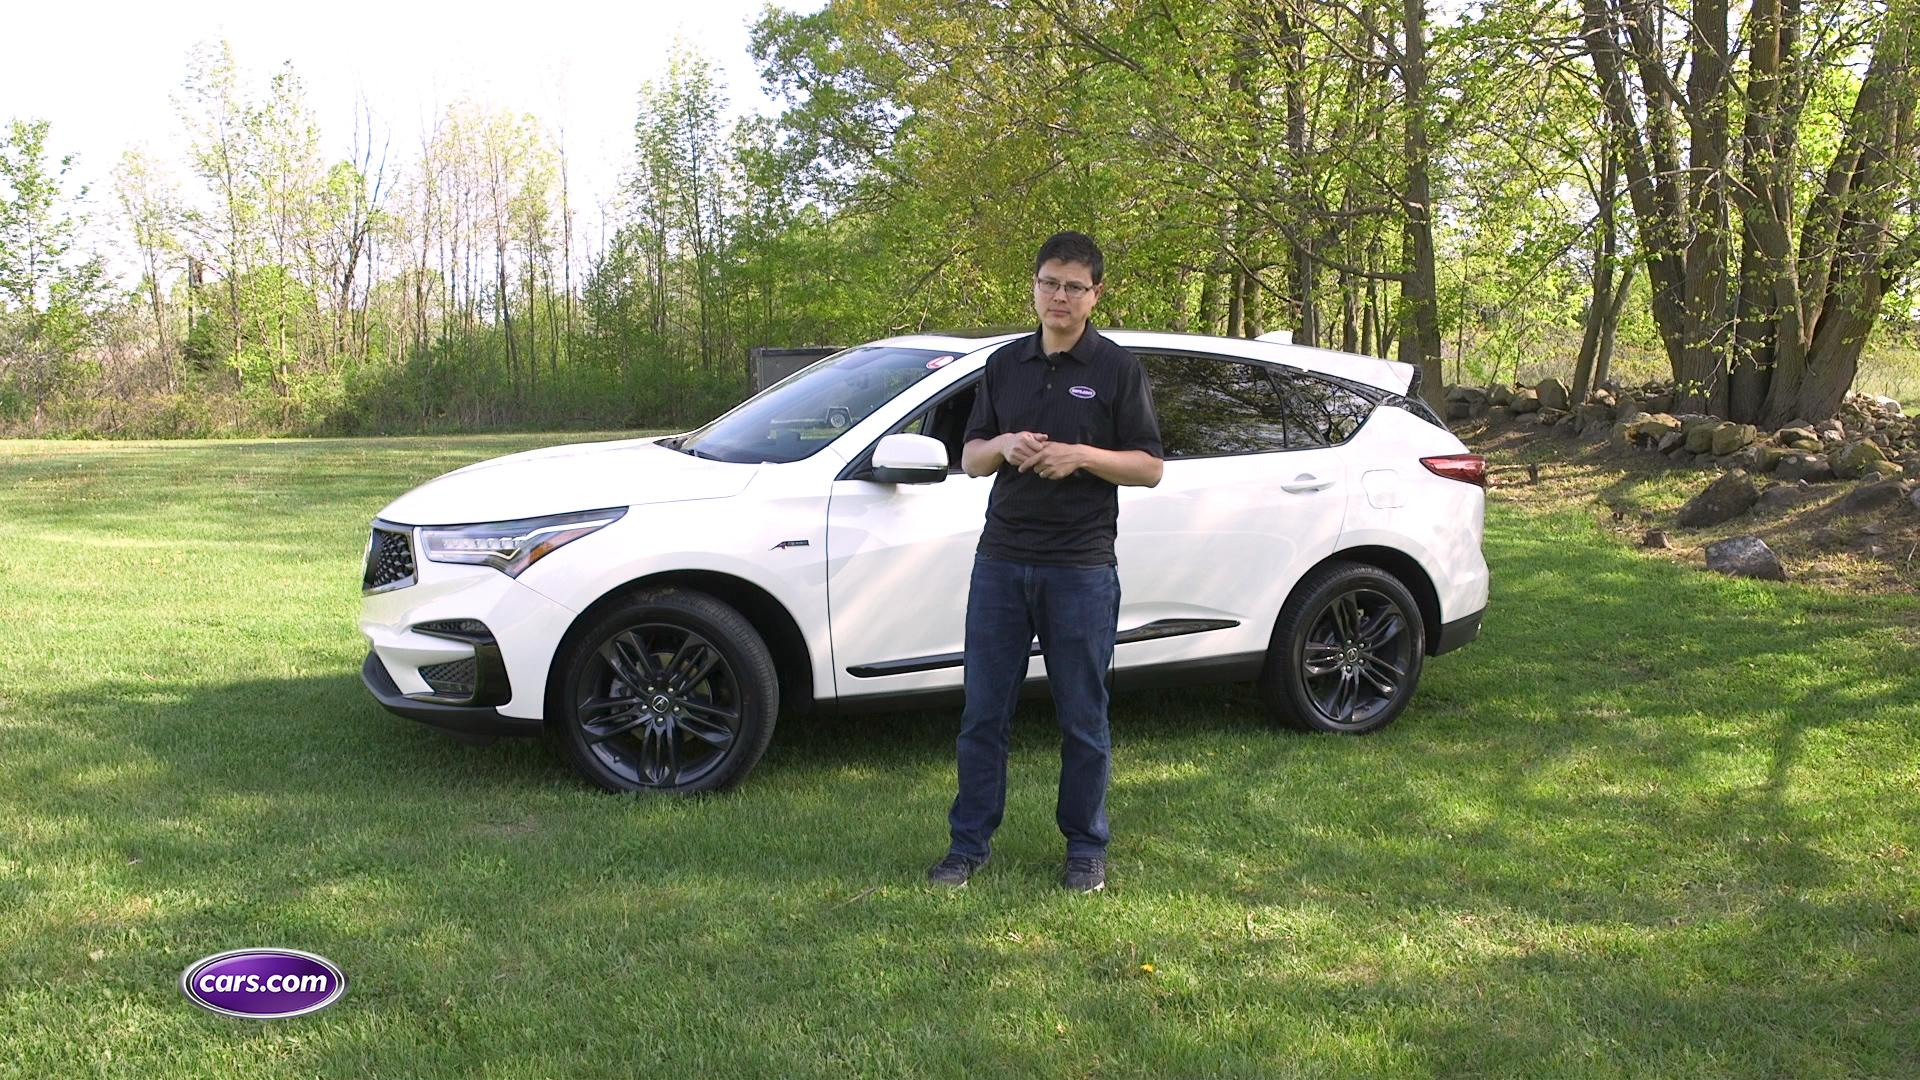 Video: 2019 Acura RDX: First Drive — Cars.com